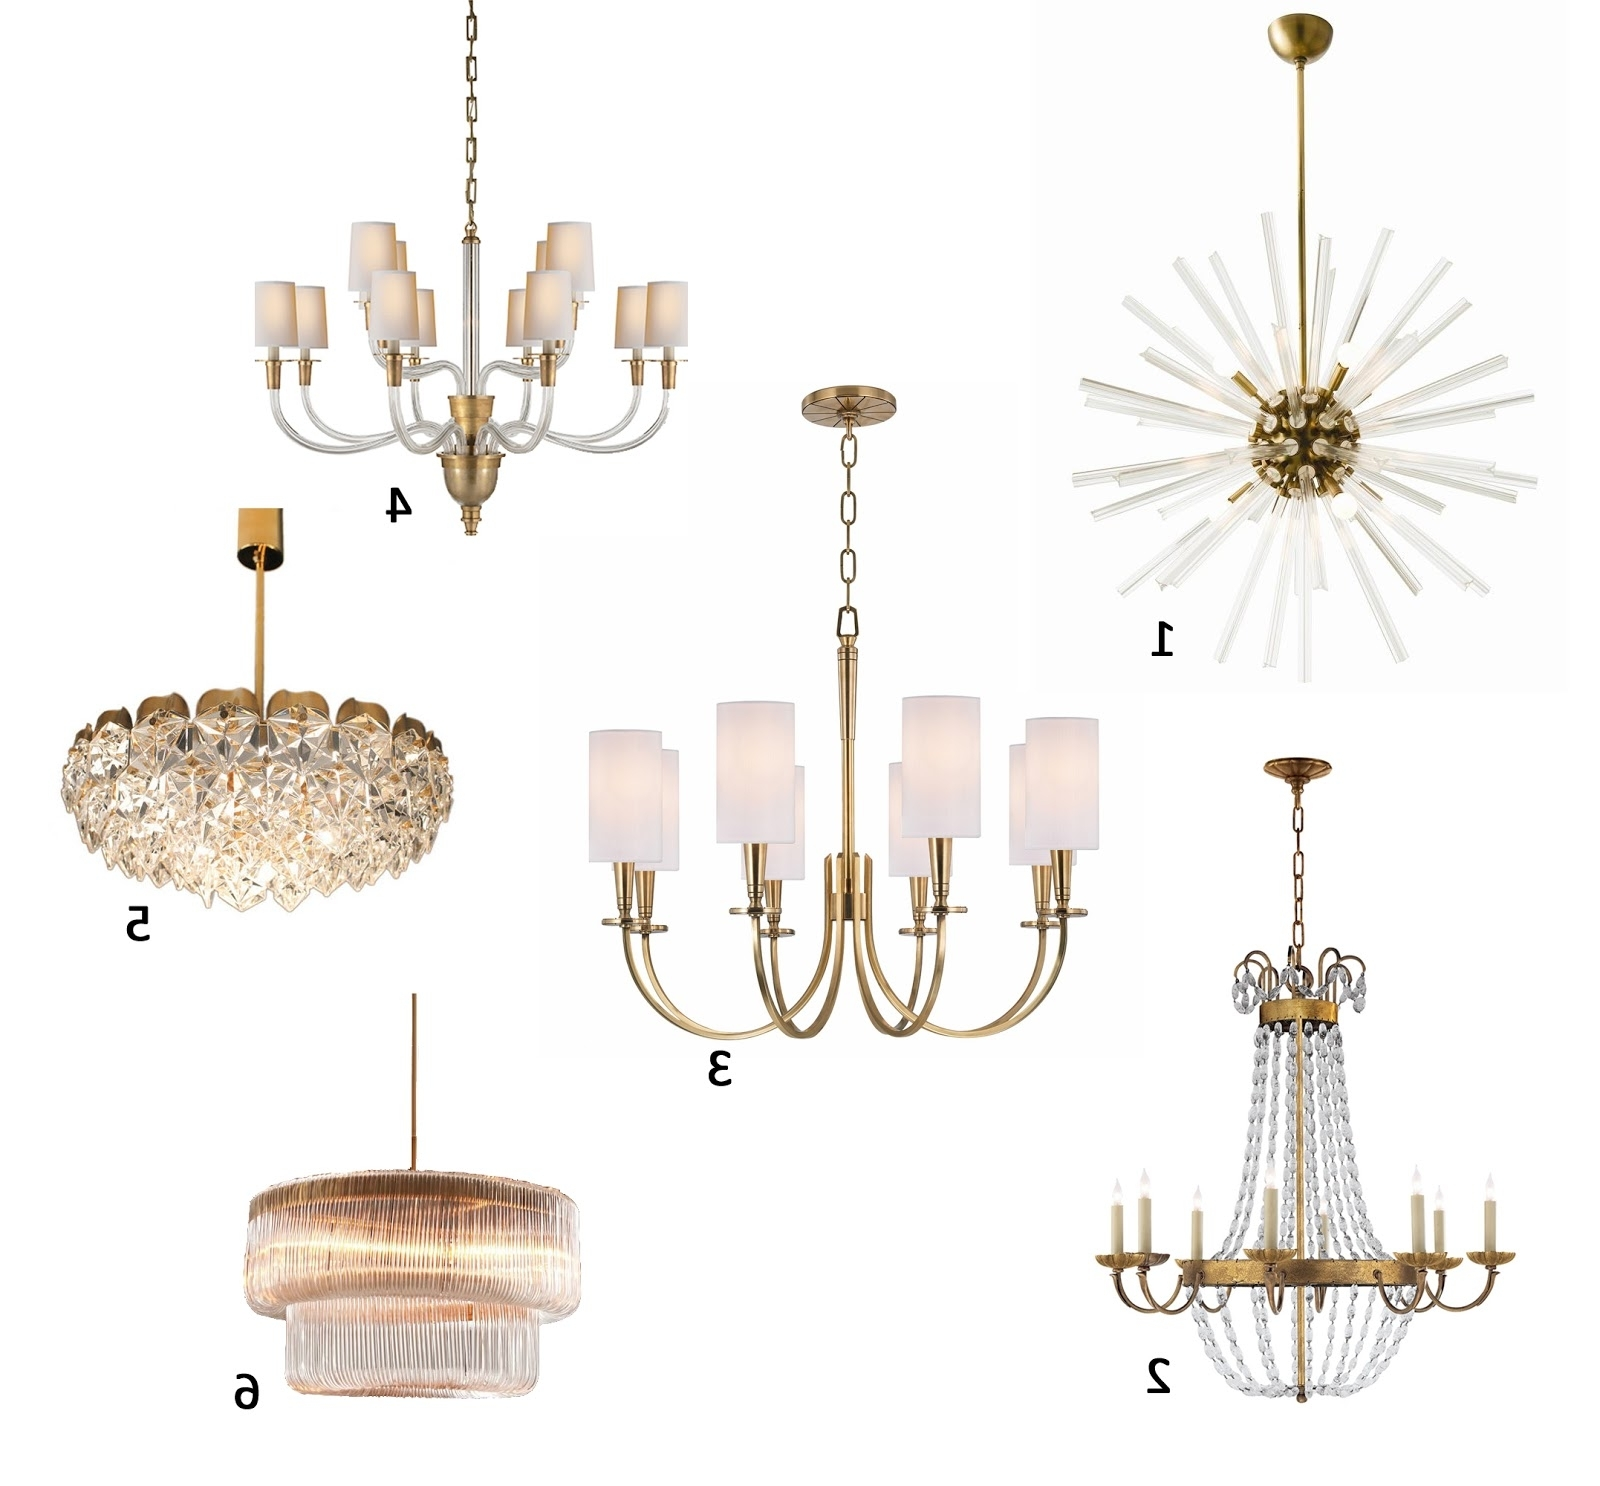 Popular Brass Chandeliers For Am Dolce Vita: A Roundup Of My Favourite Brass Chandeliers (View 13 of 20)